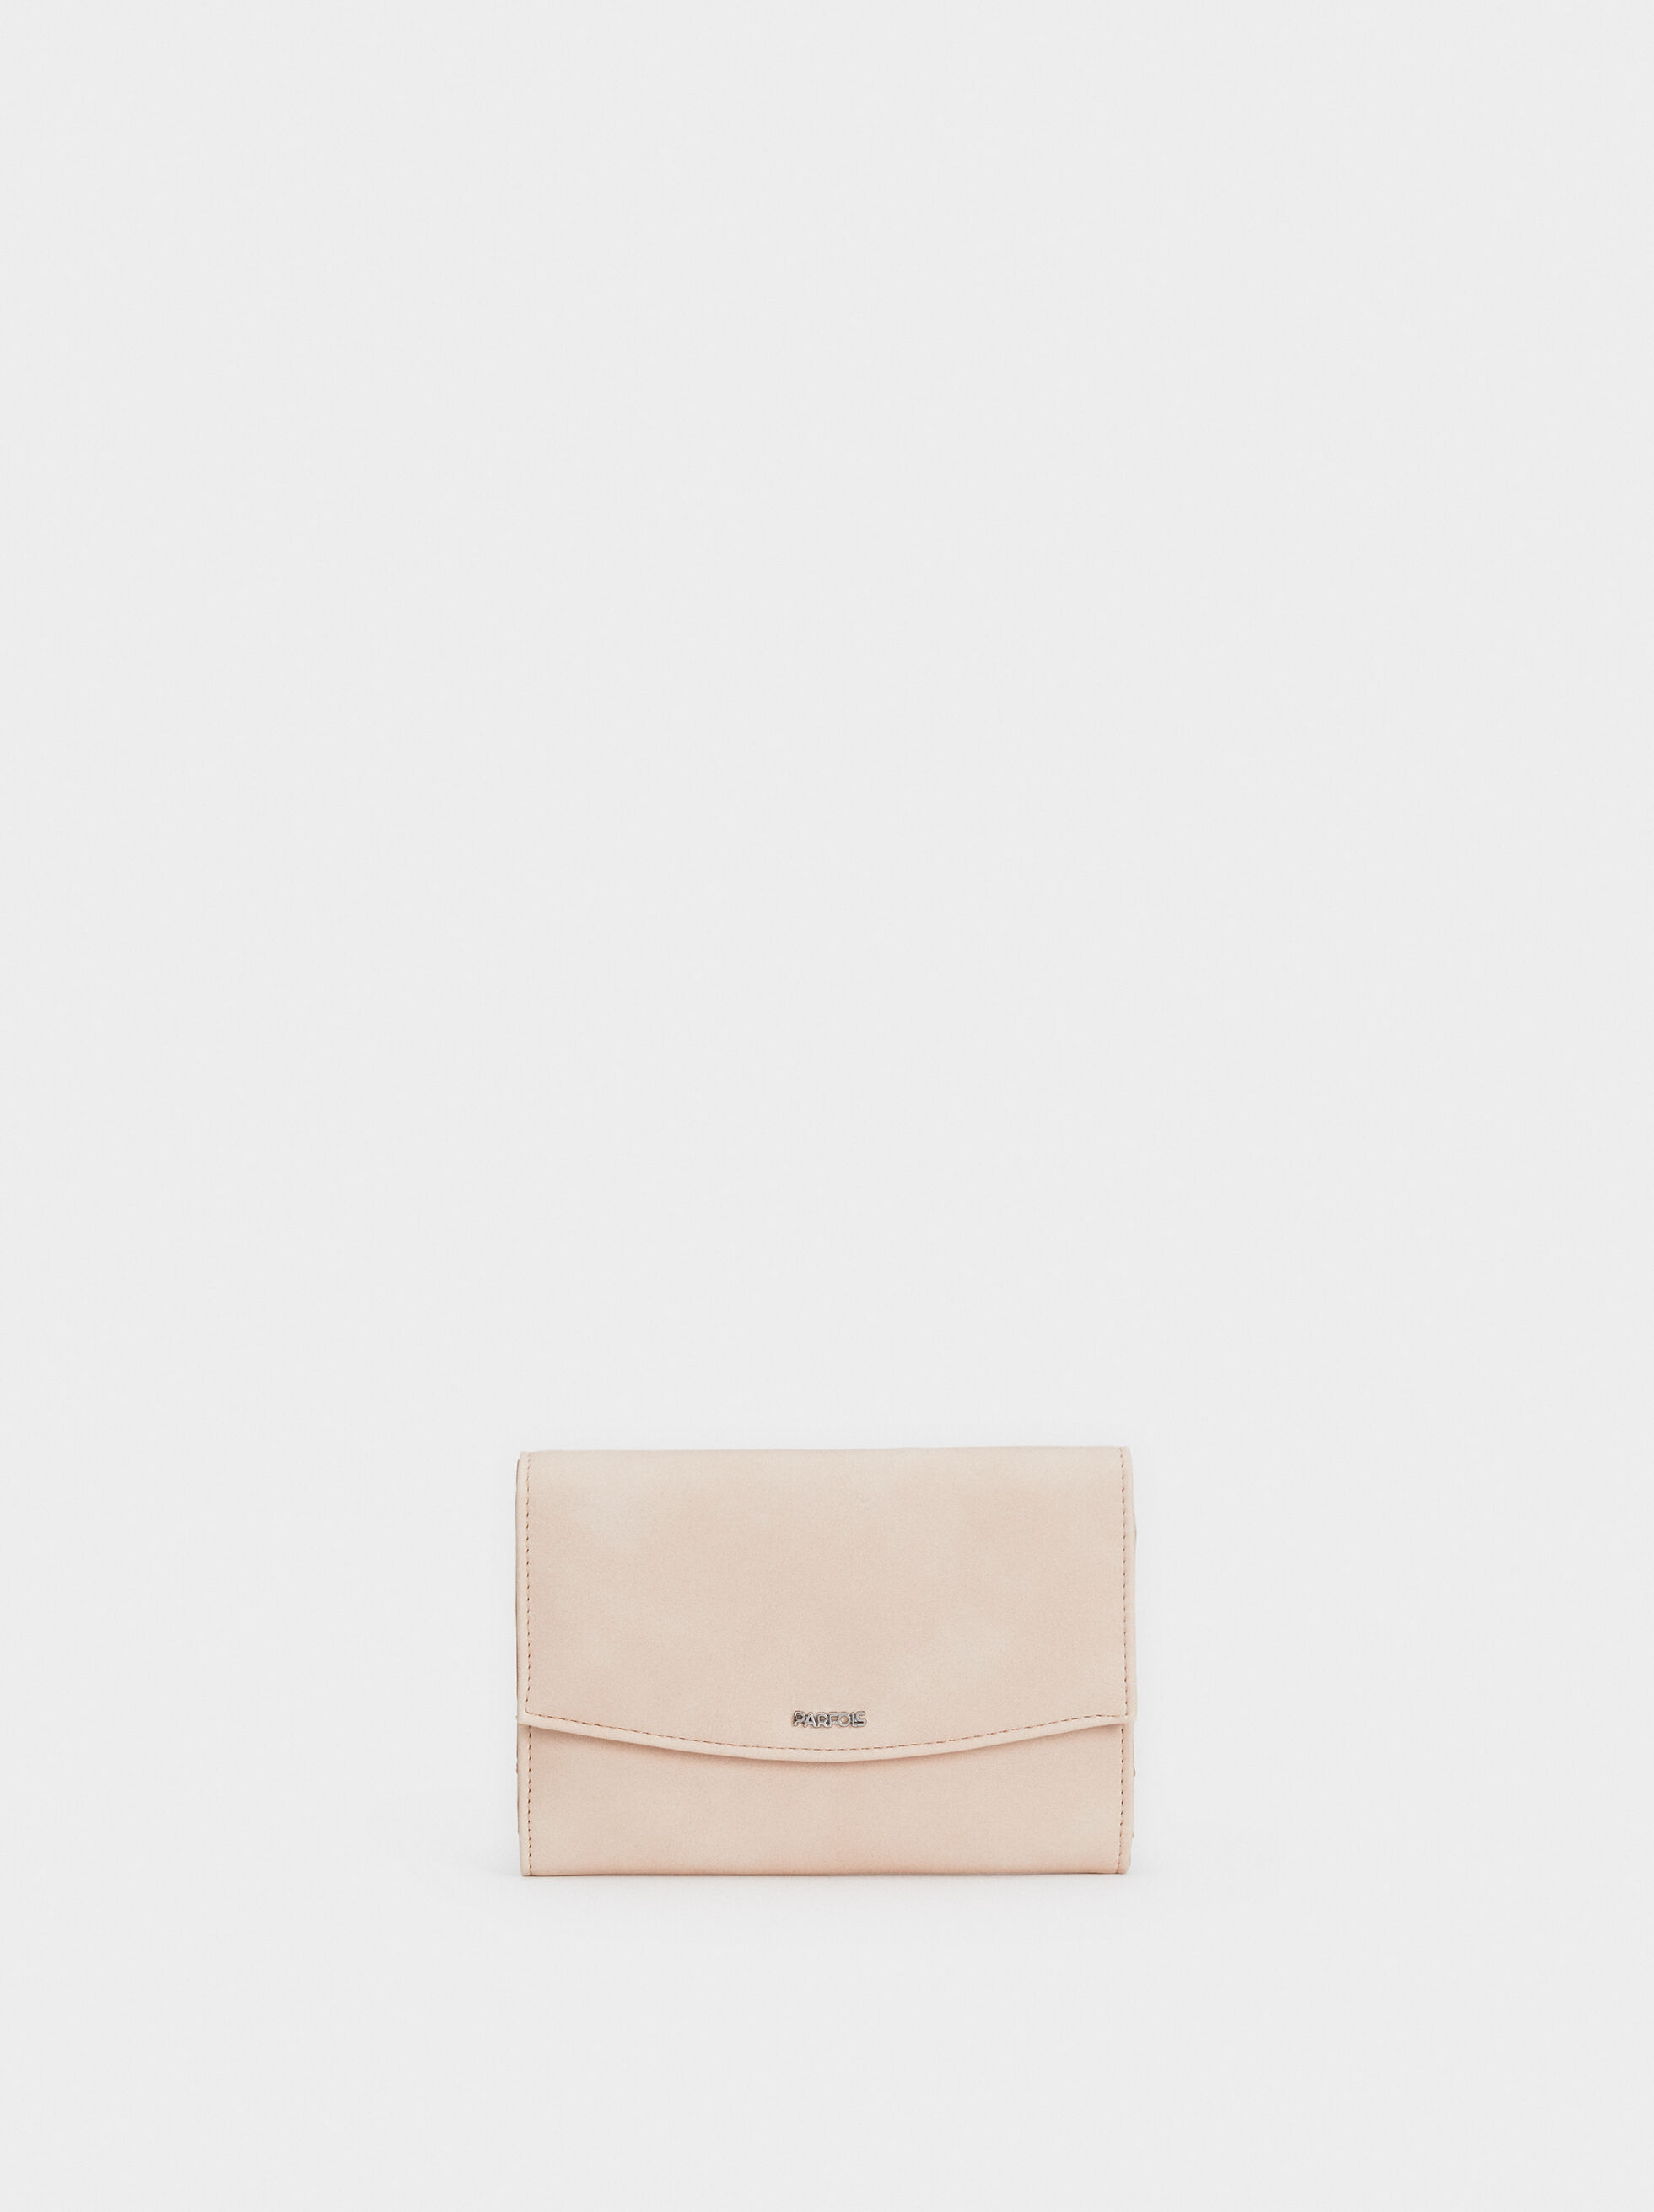 Small Suede Texture Purse, Beige, hi-res